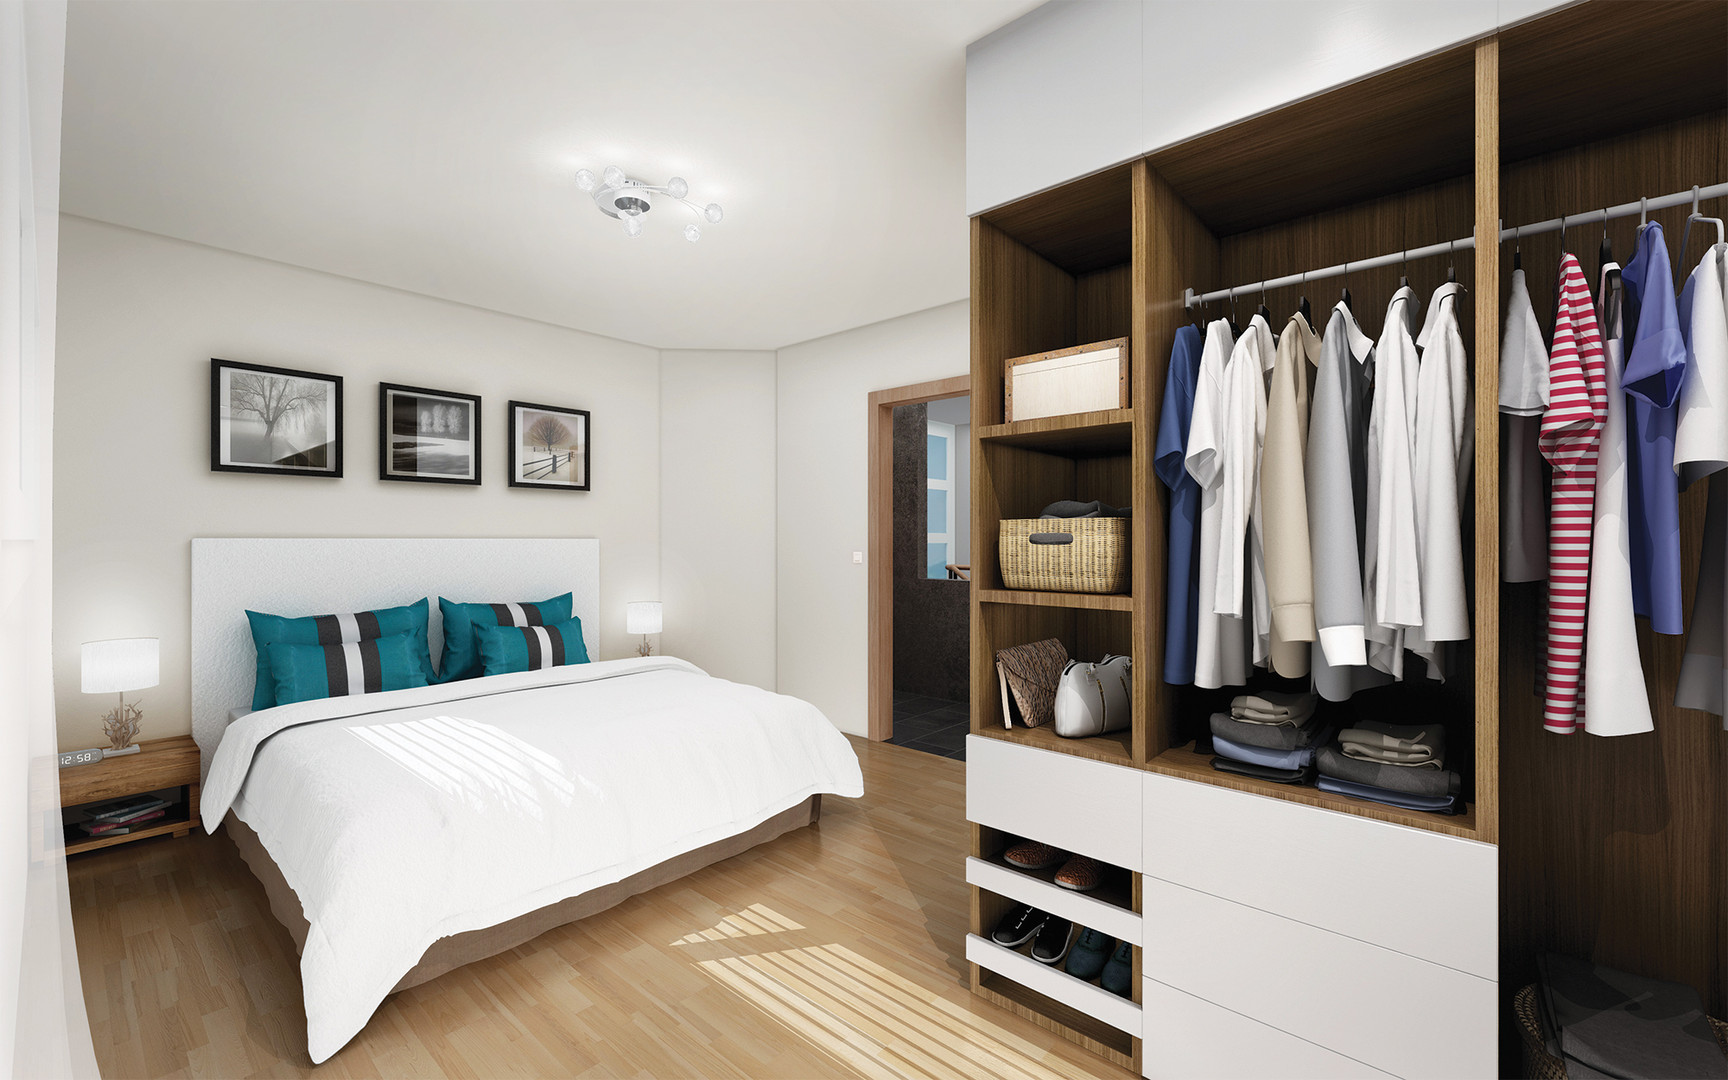 Residence Champ-Bally, vue interieur, chambre